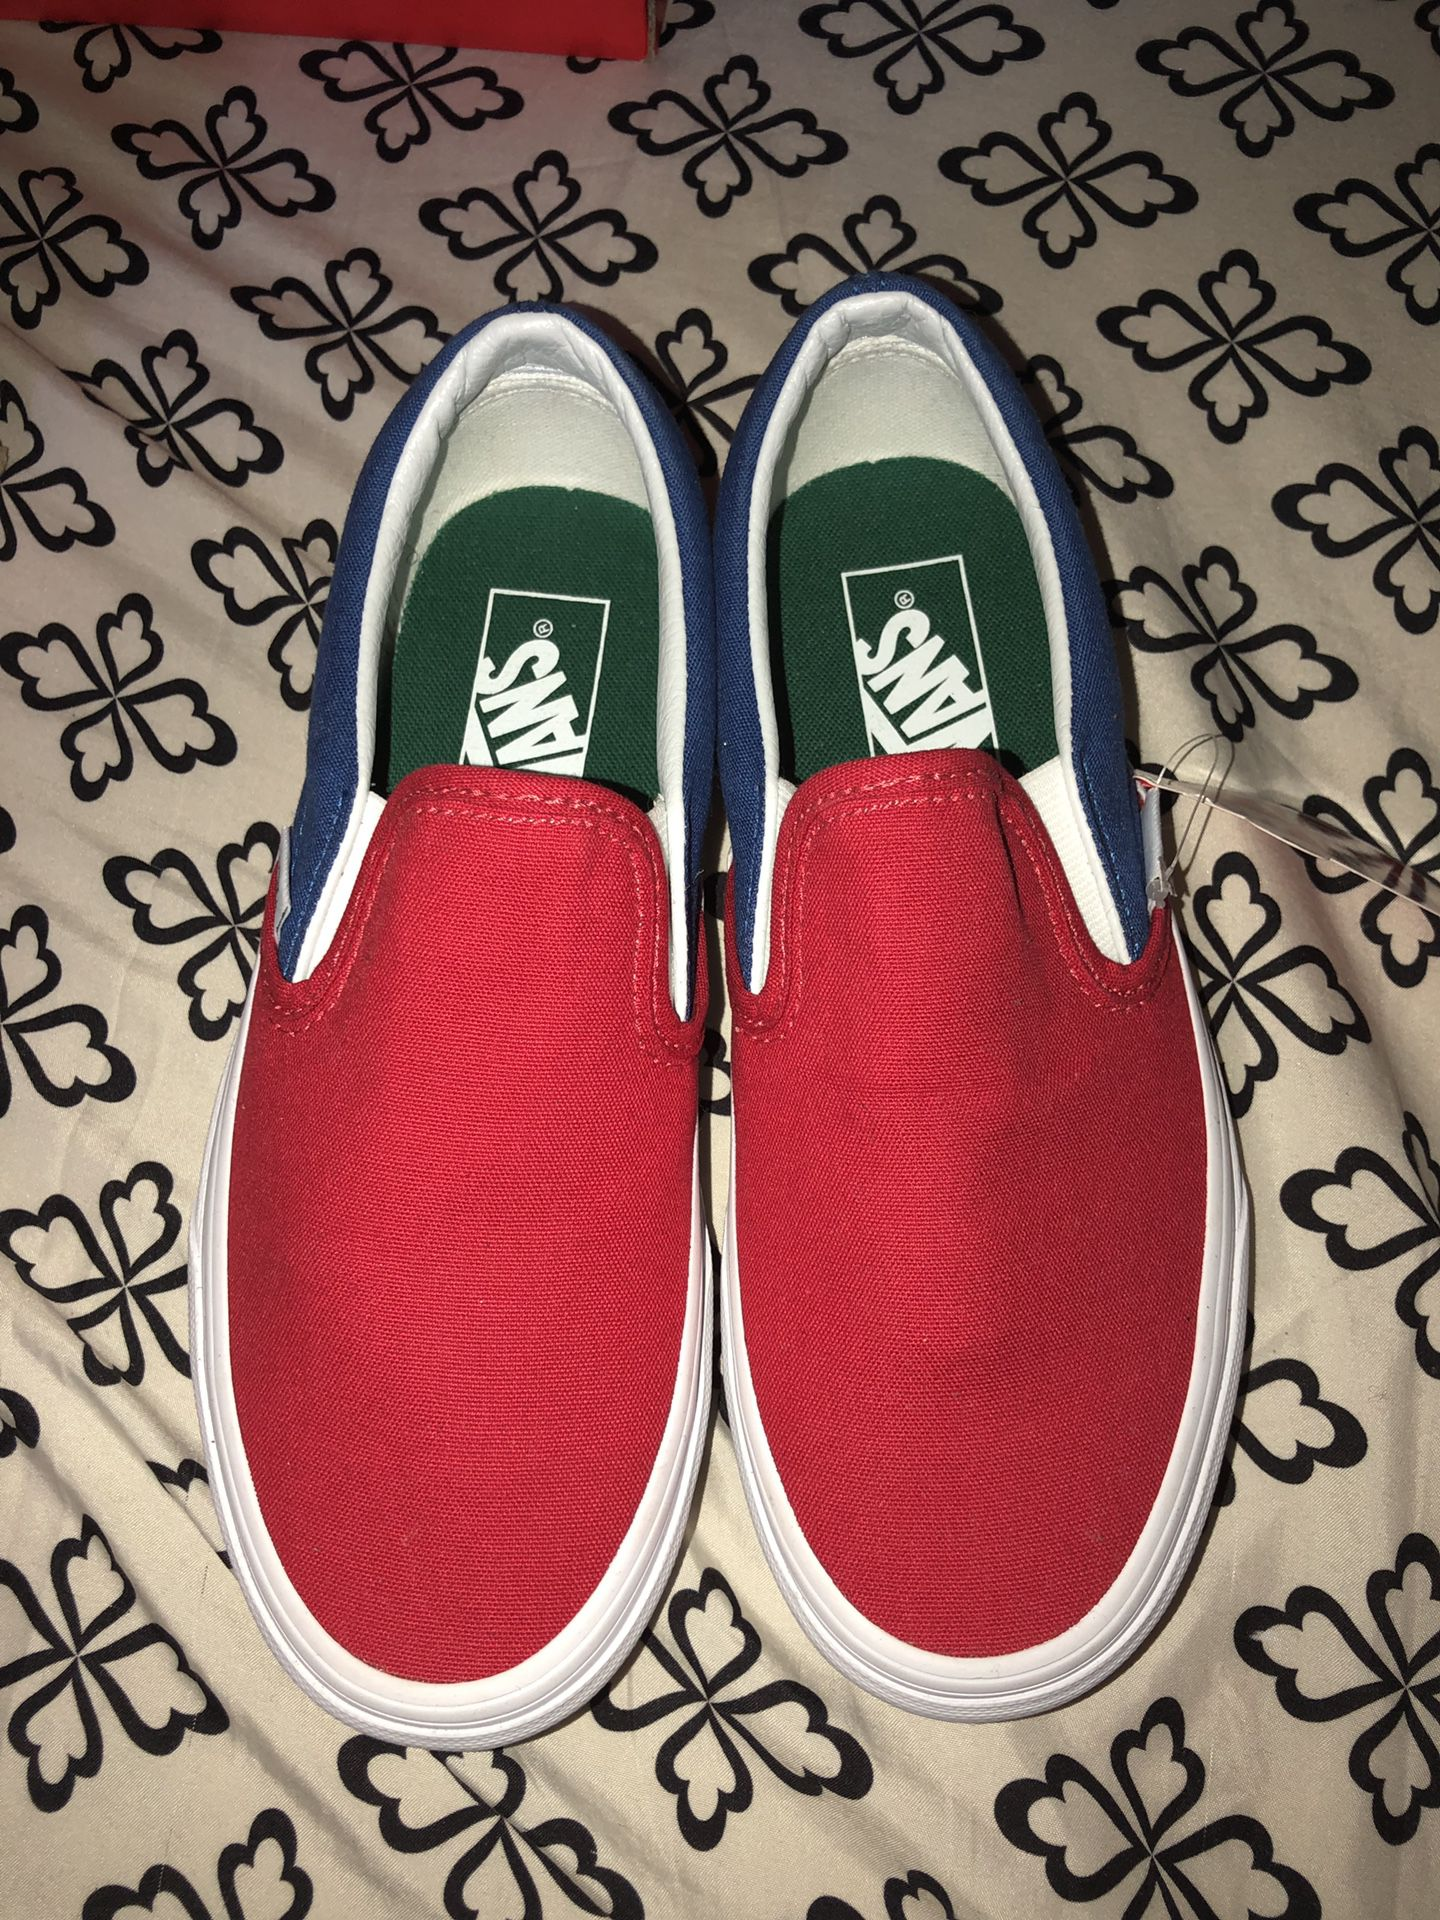 DS VANS YACHT CLUB (LIMITED EDITION) SIZE 6